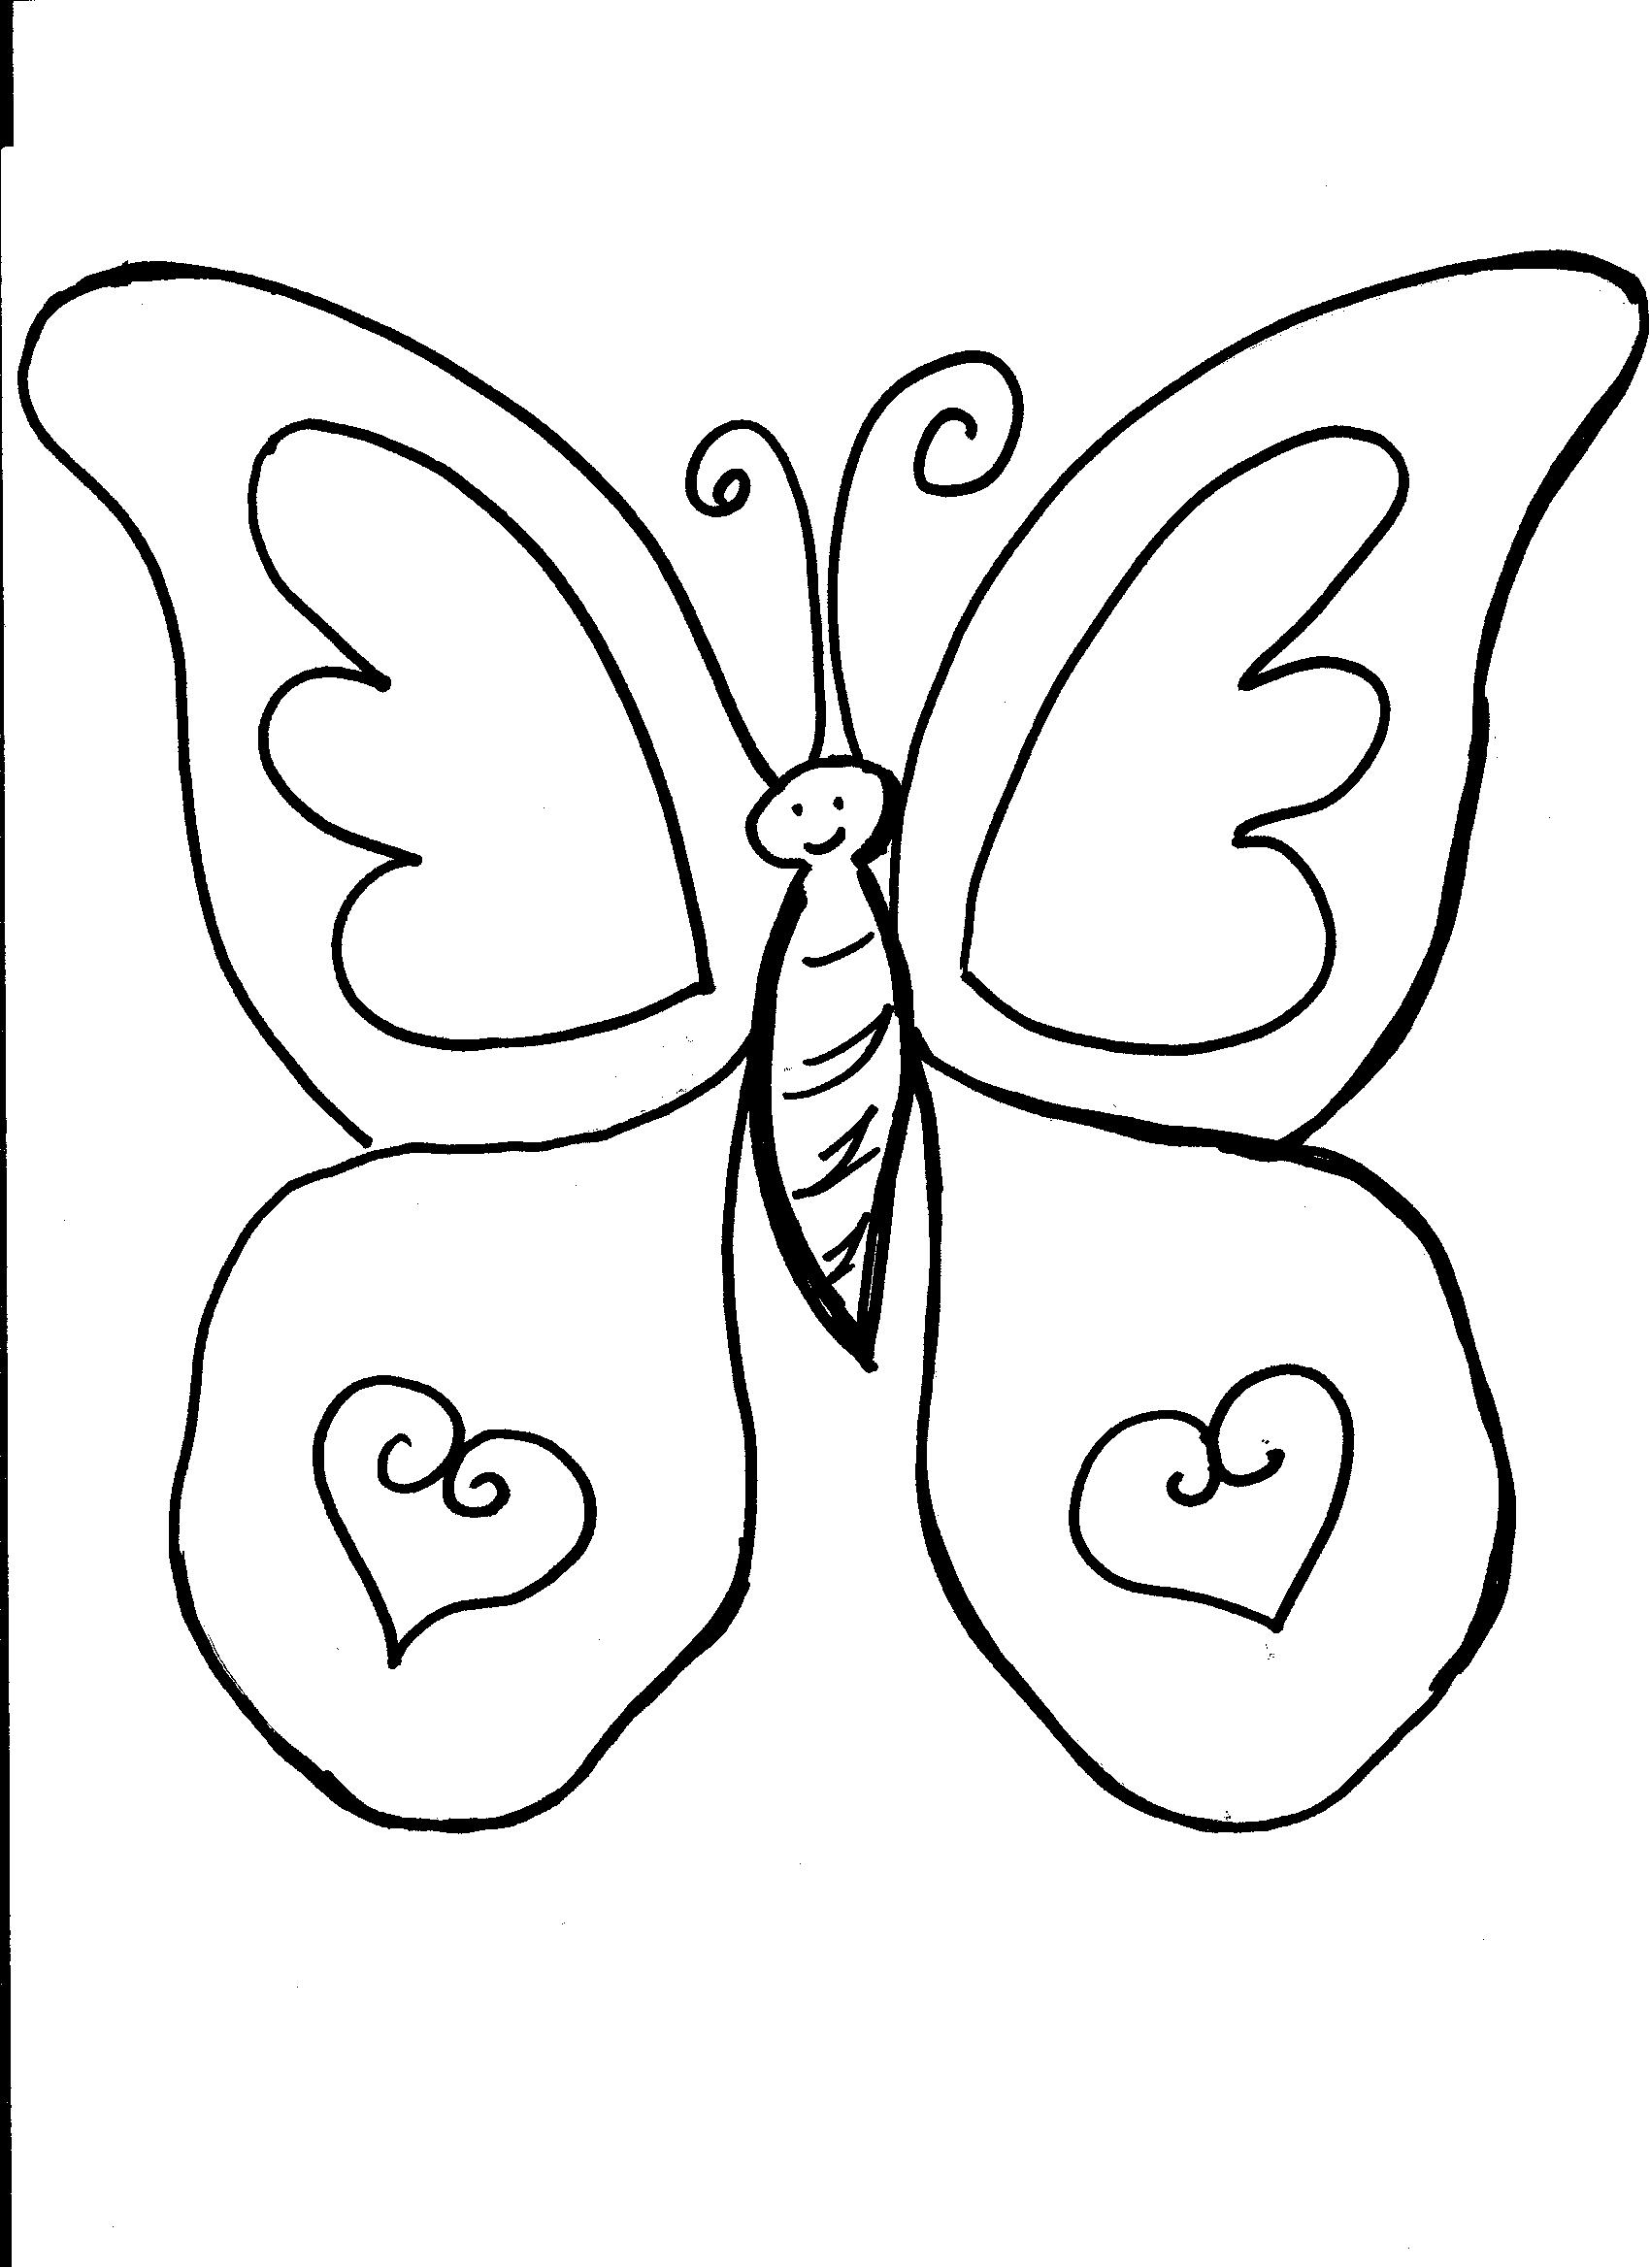 printable butterfly coloring page cute butterfly coloring pages getcoloringpagescom printable coloring page butterfly